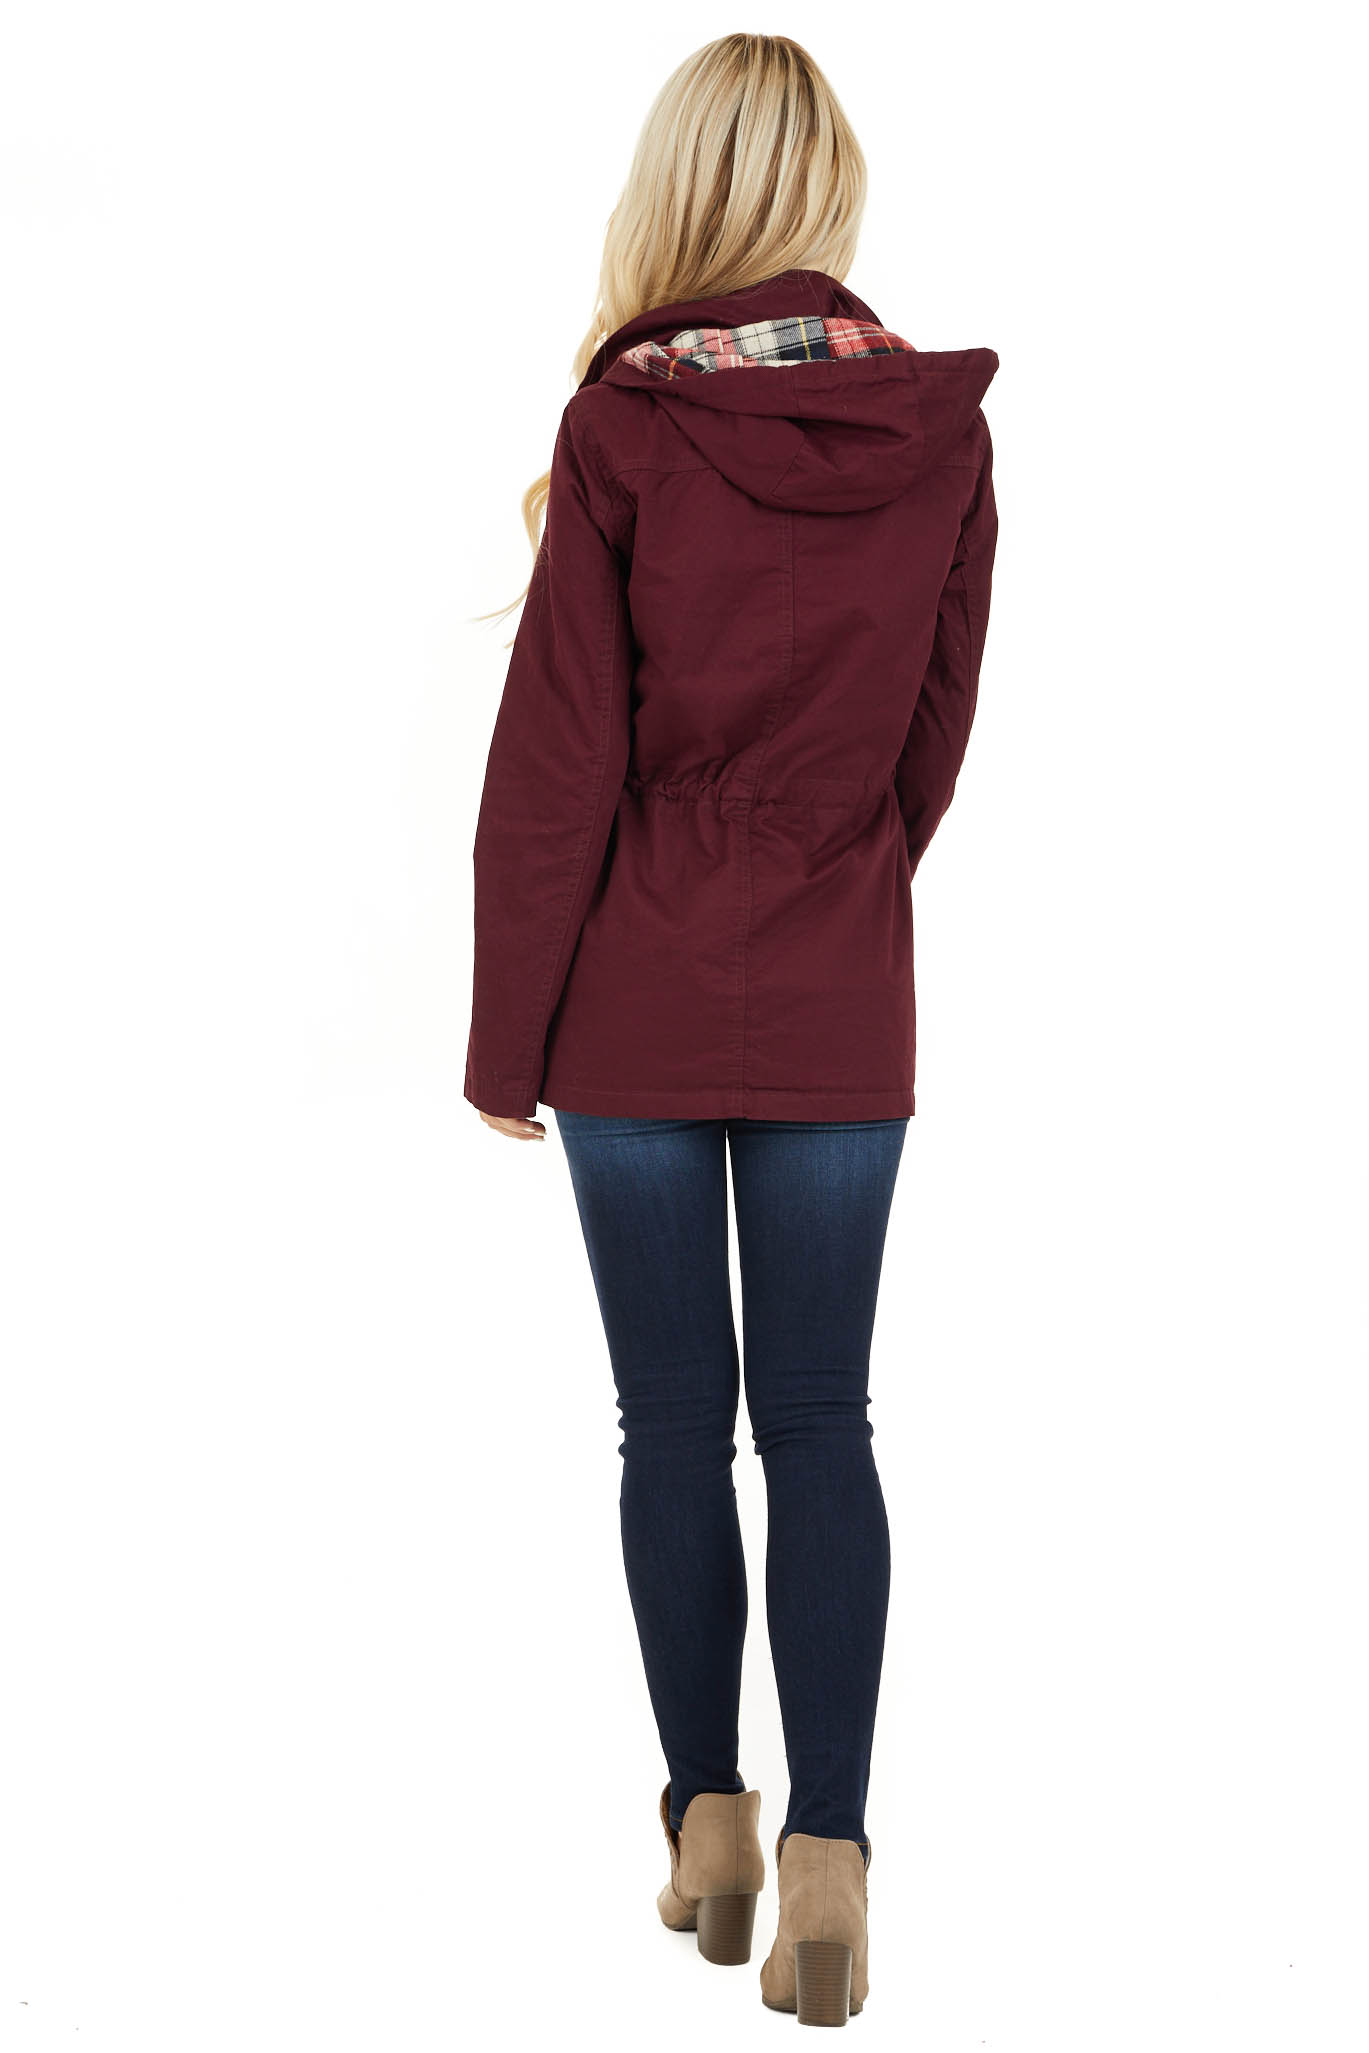 Burgundy Hooded Long Sleeve Military Jacket with Pockets back full body